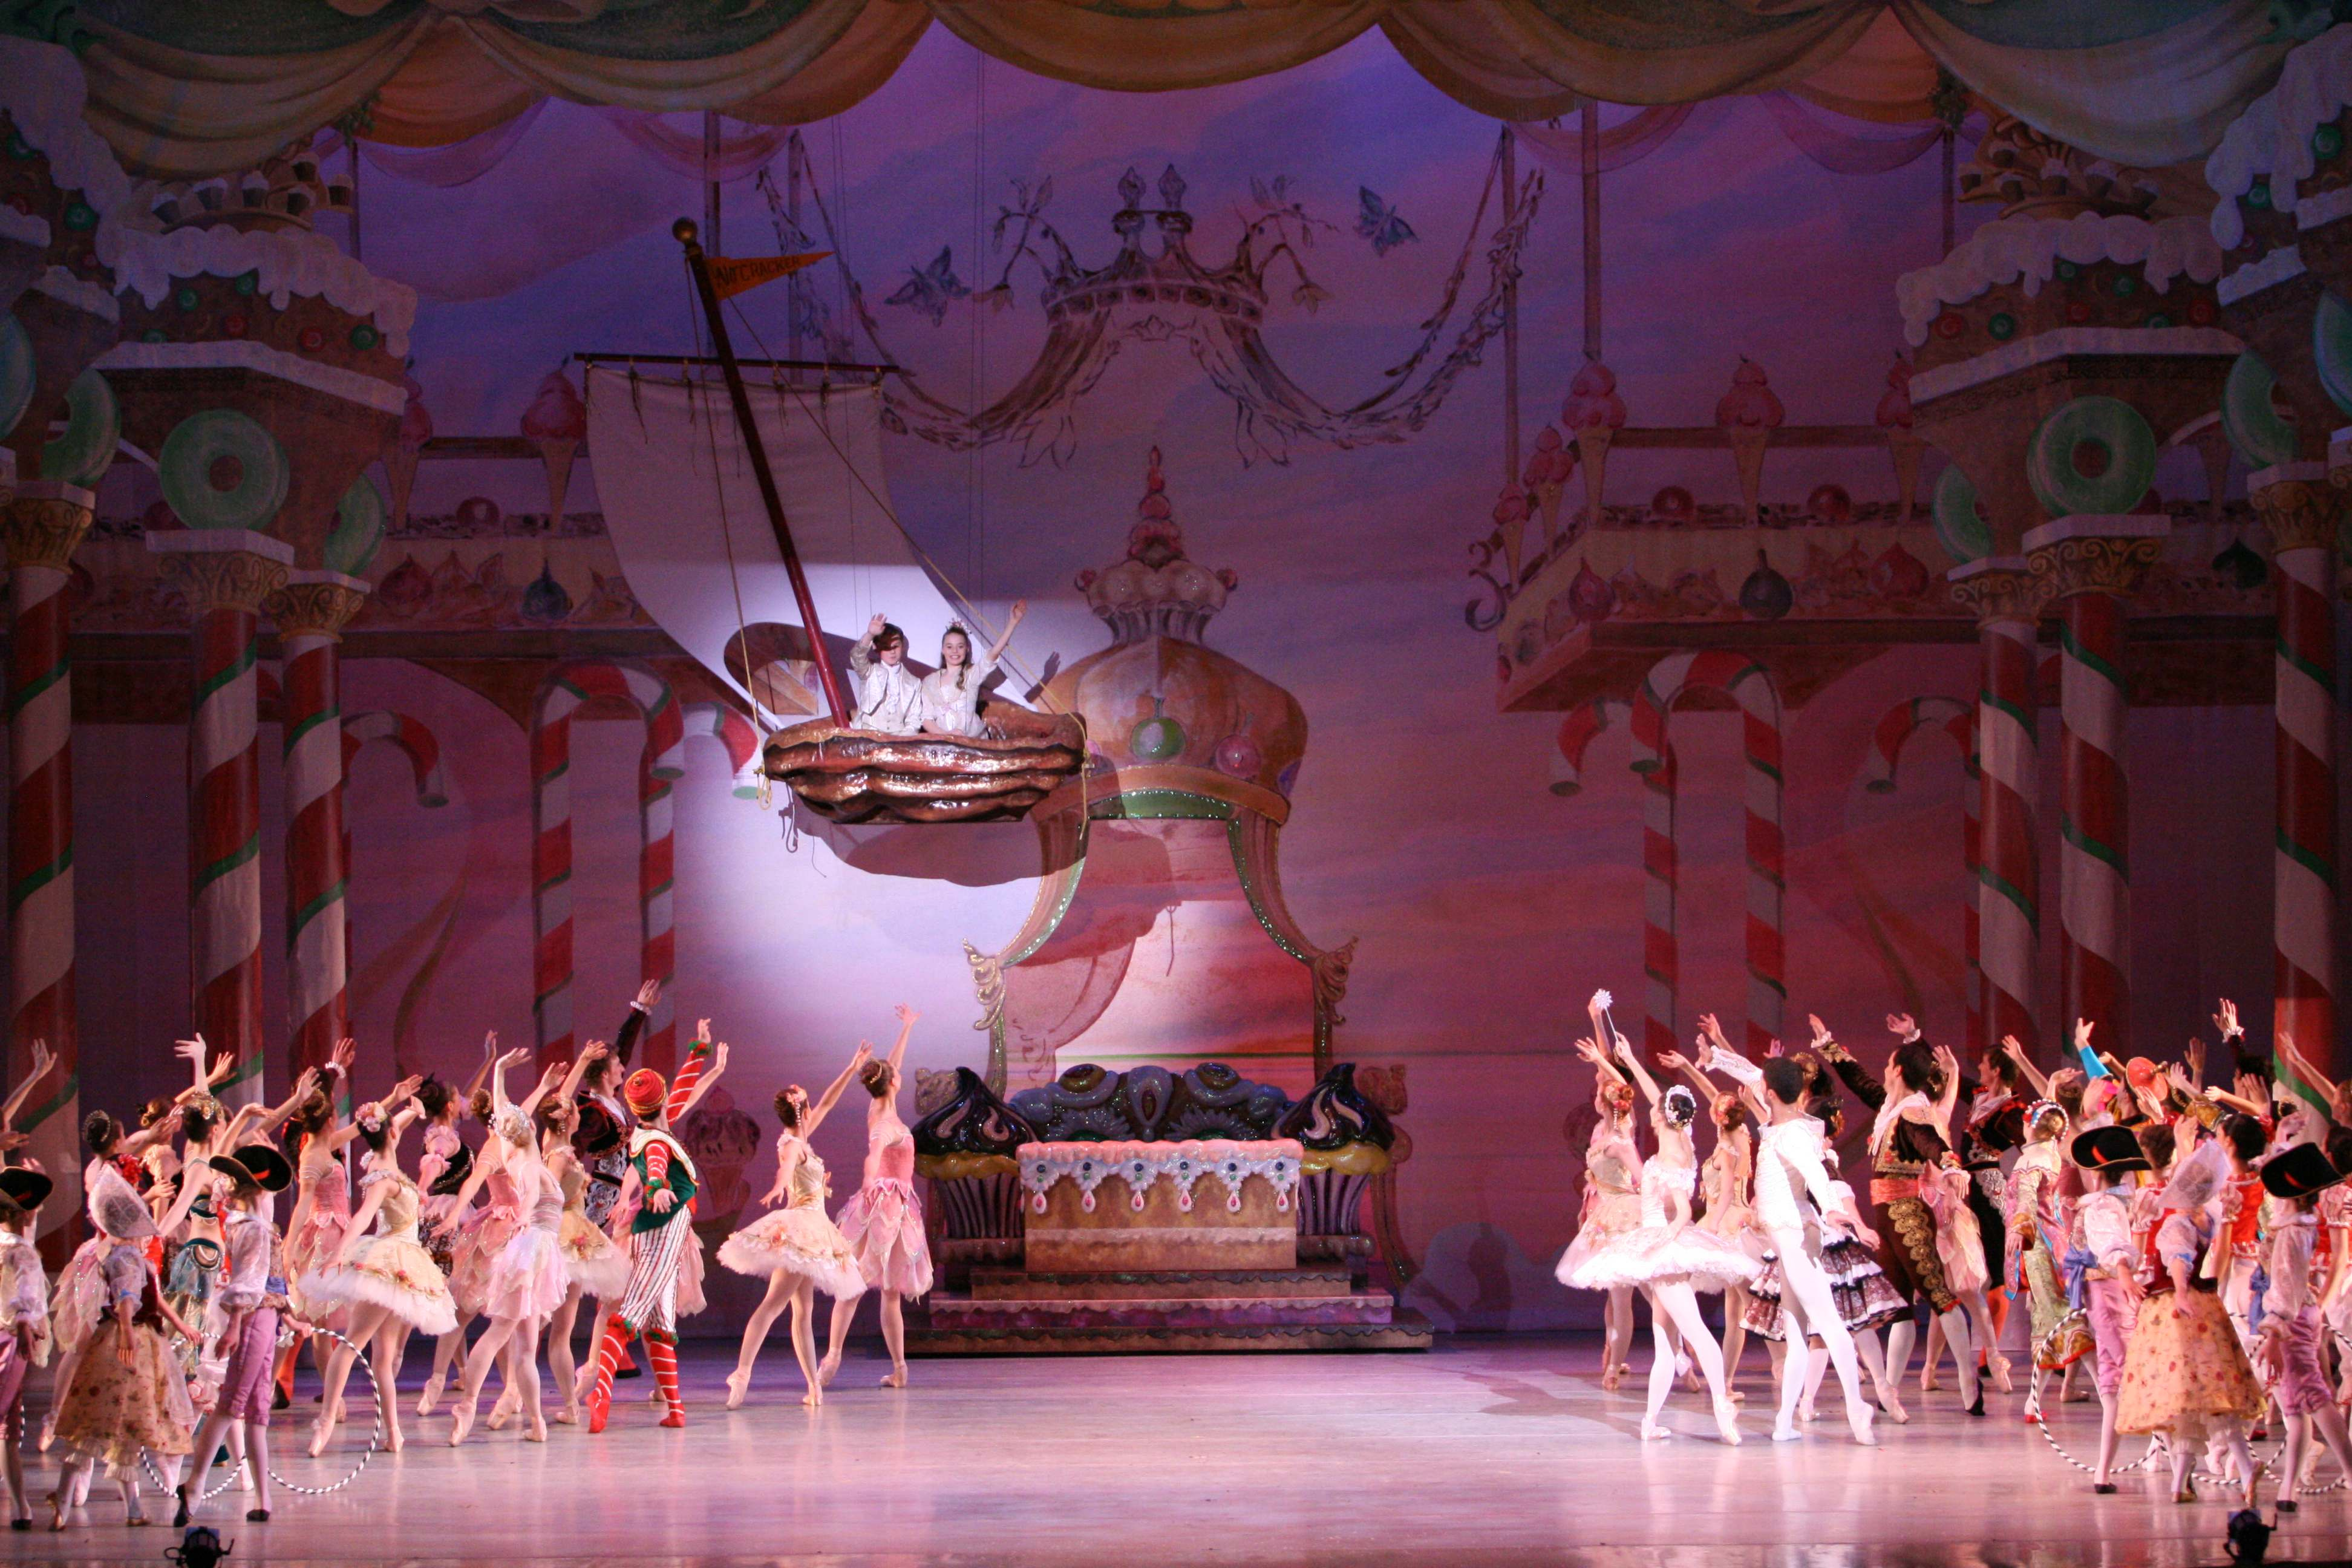 THE WEEKENDER: Christmas crafts, holiday shopping, The Nutcracker, plus Hackfest and poetry for the first weekend of December